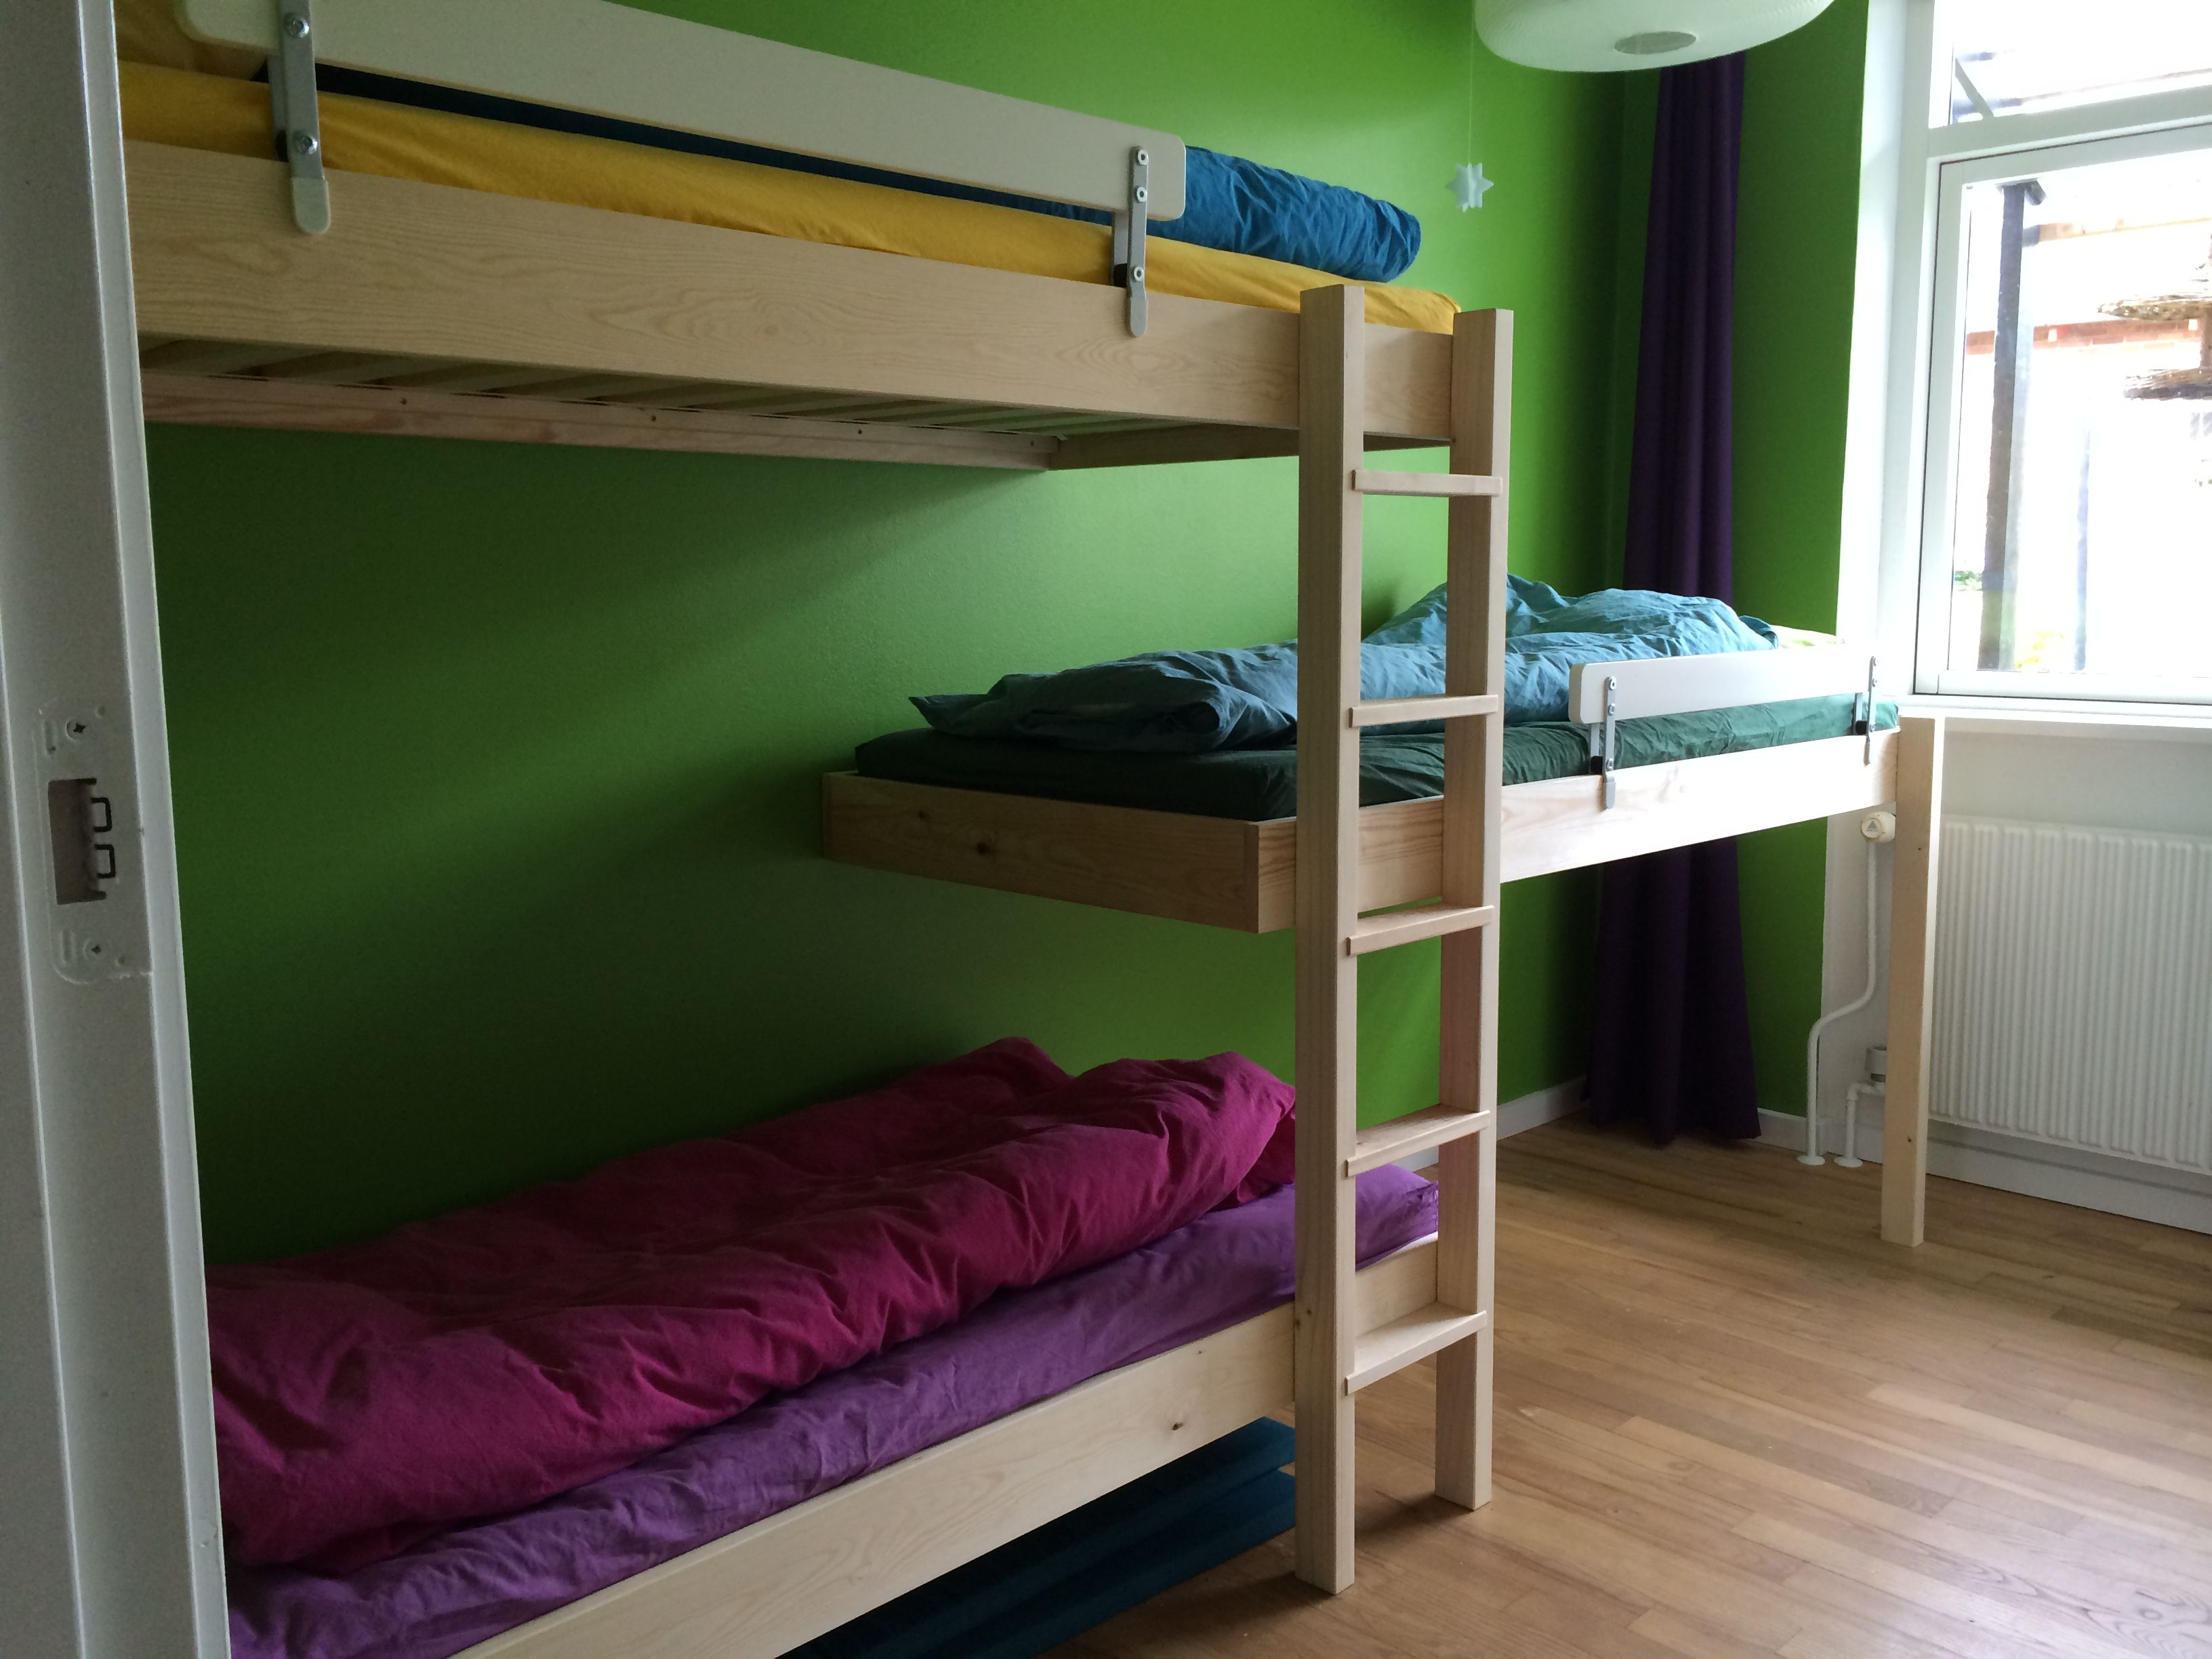 Triple Bunk Bed In Room With Low Ceiling Three Frames And Four Legs